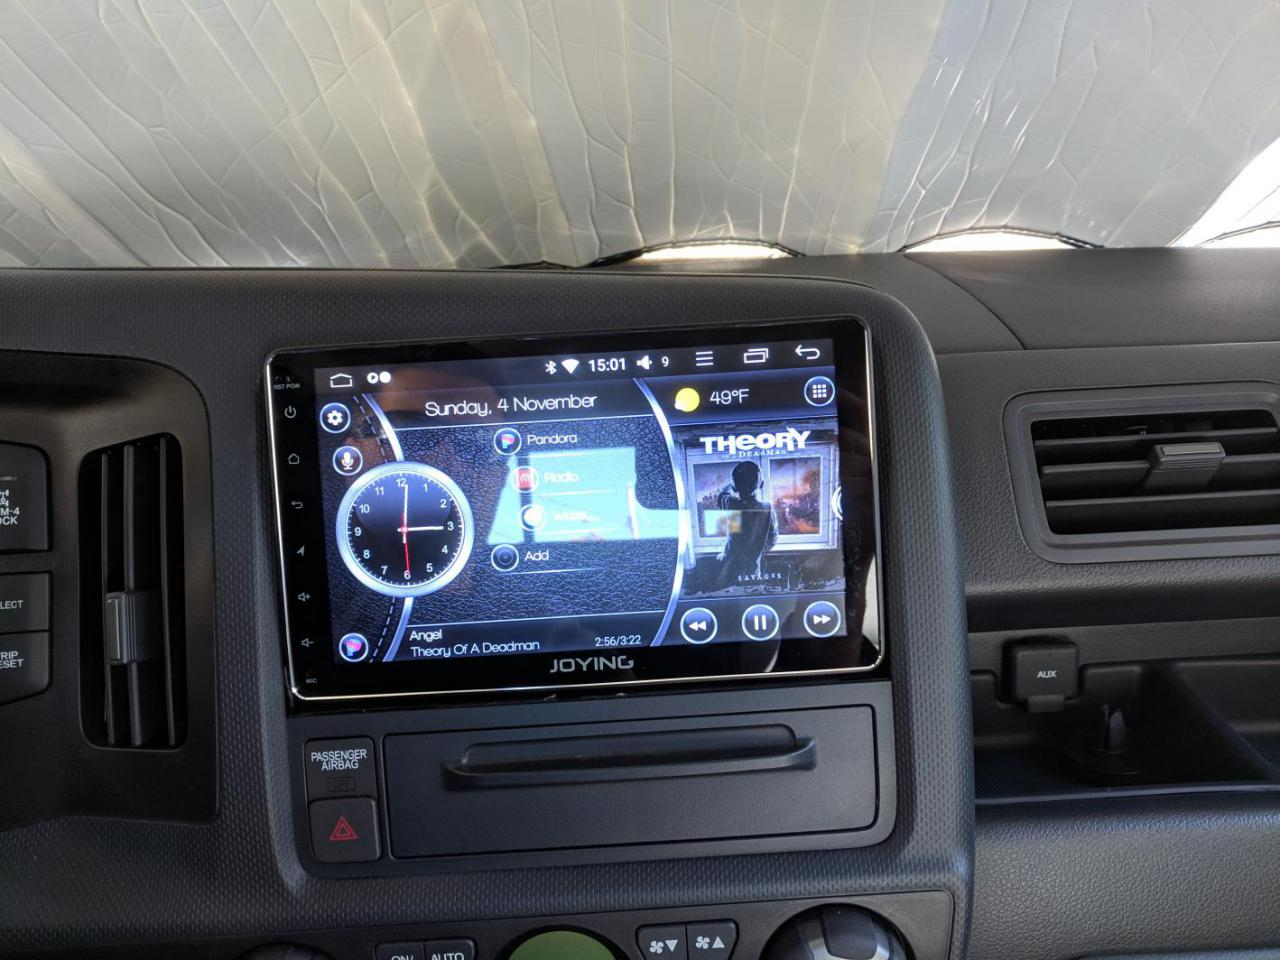 Aftermarket Android head unit   Honda Ridgeline Owners Club Forums